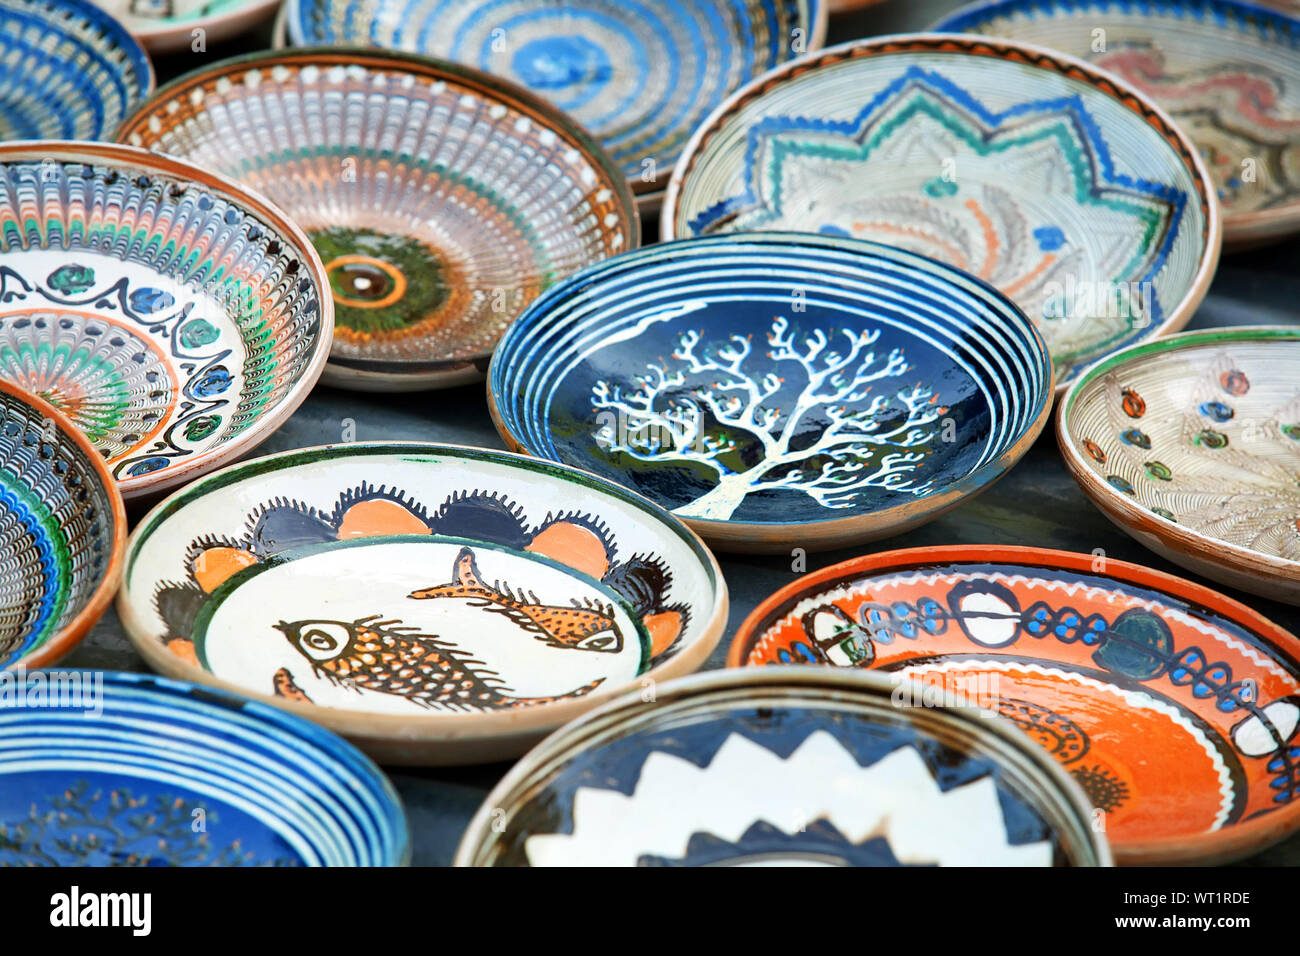 Plates For Sale >> High Angle View Of Romanian Traditional Ceramic Plates For